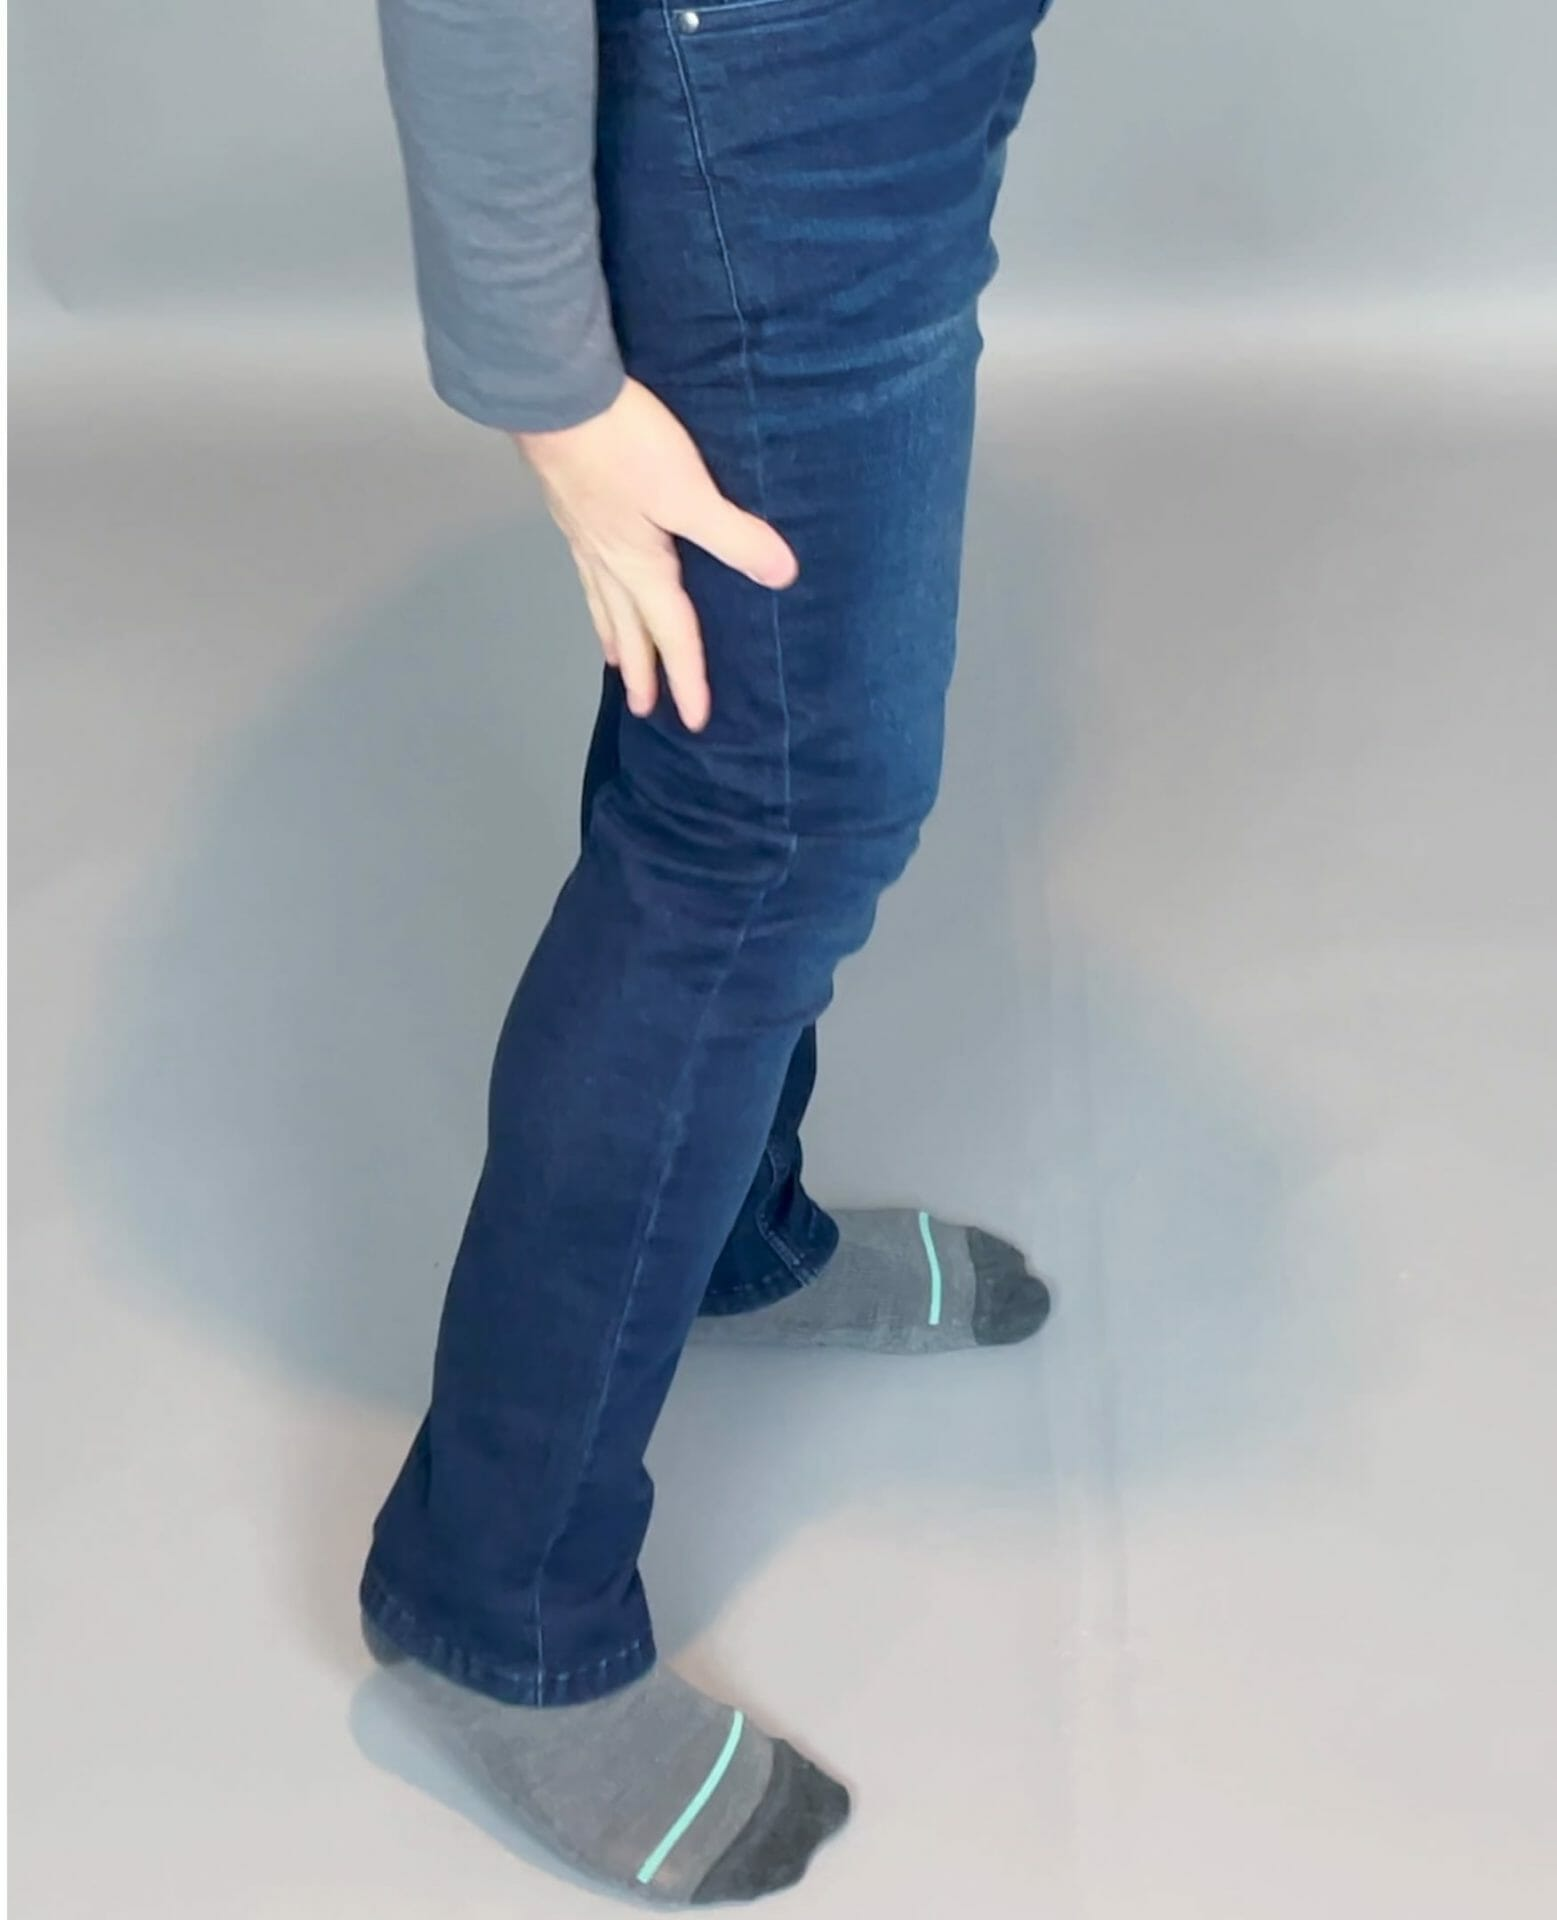 Perfect Jean Review: Is the perfect jean - THE perfect Jean? 9